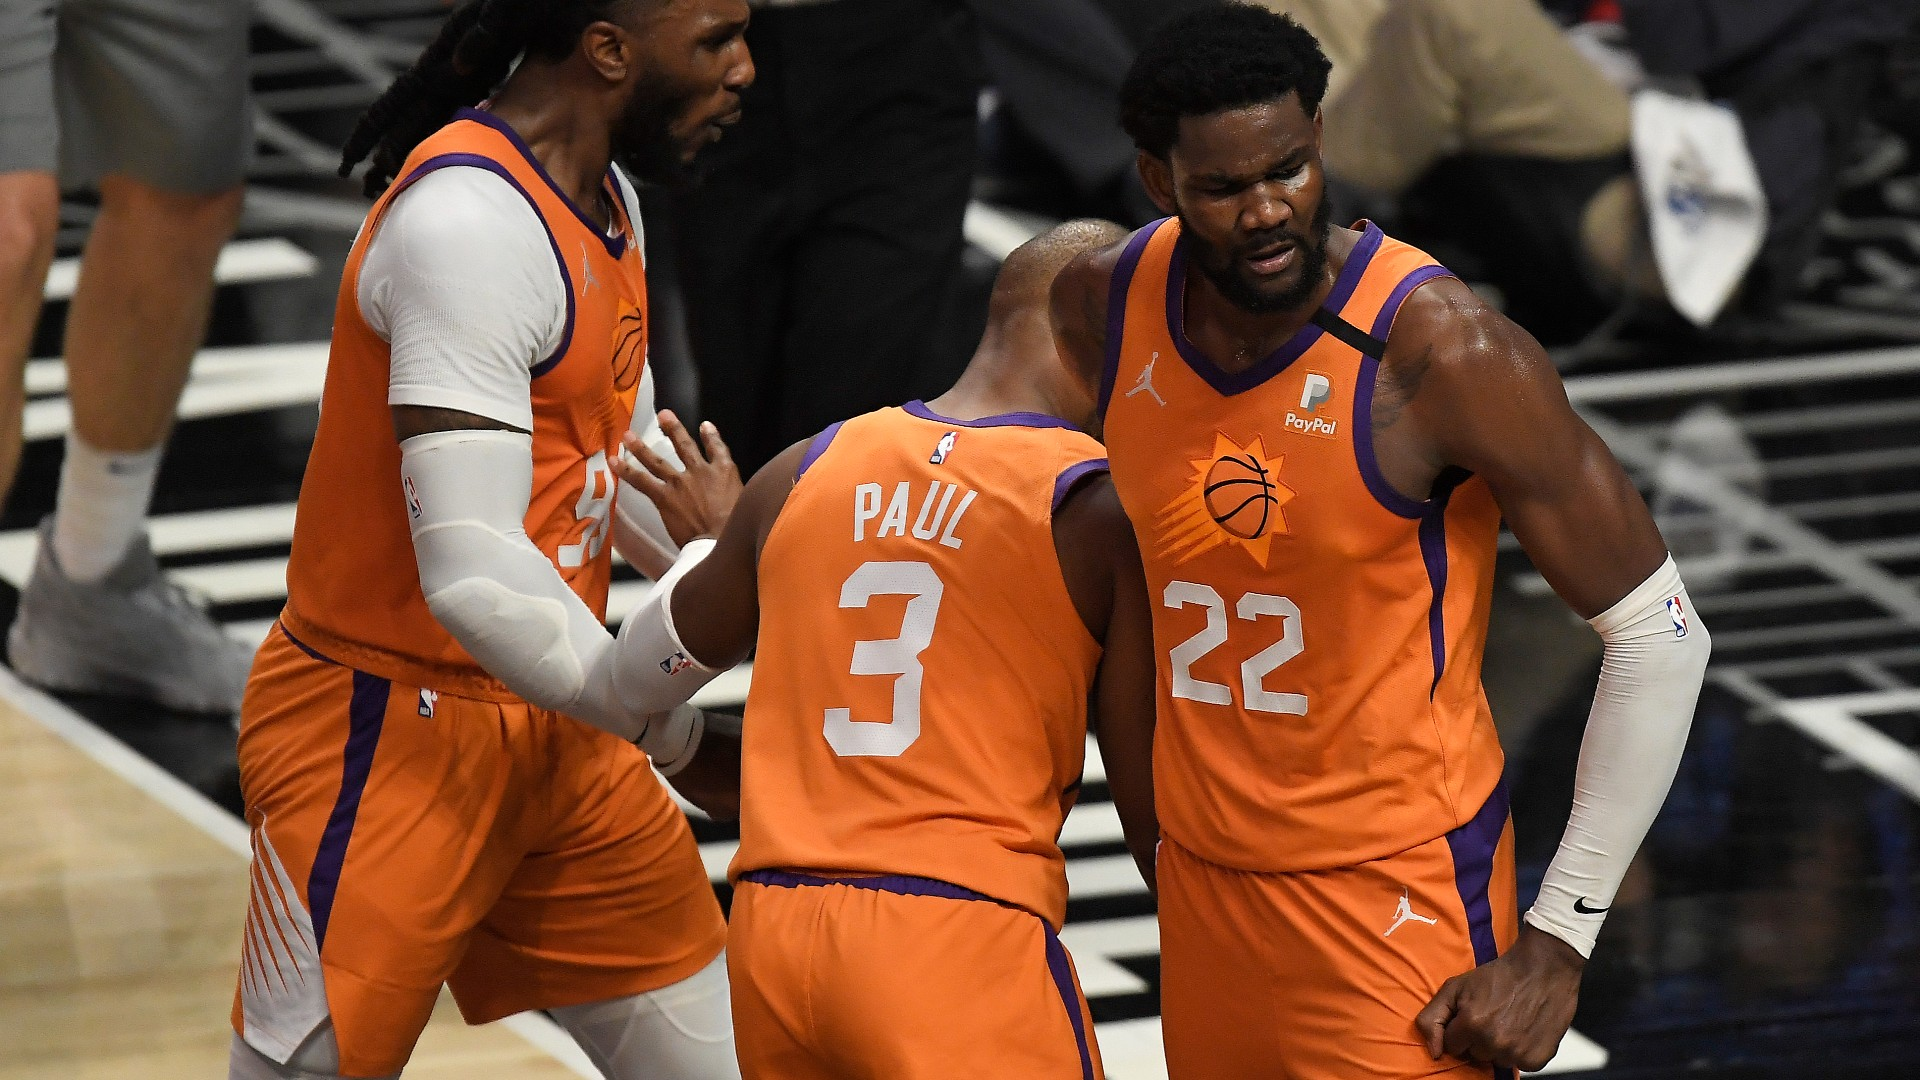 Deandre Ayton paints a masterpiece as Suns get closer to erasing Clippers